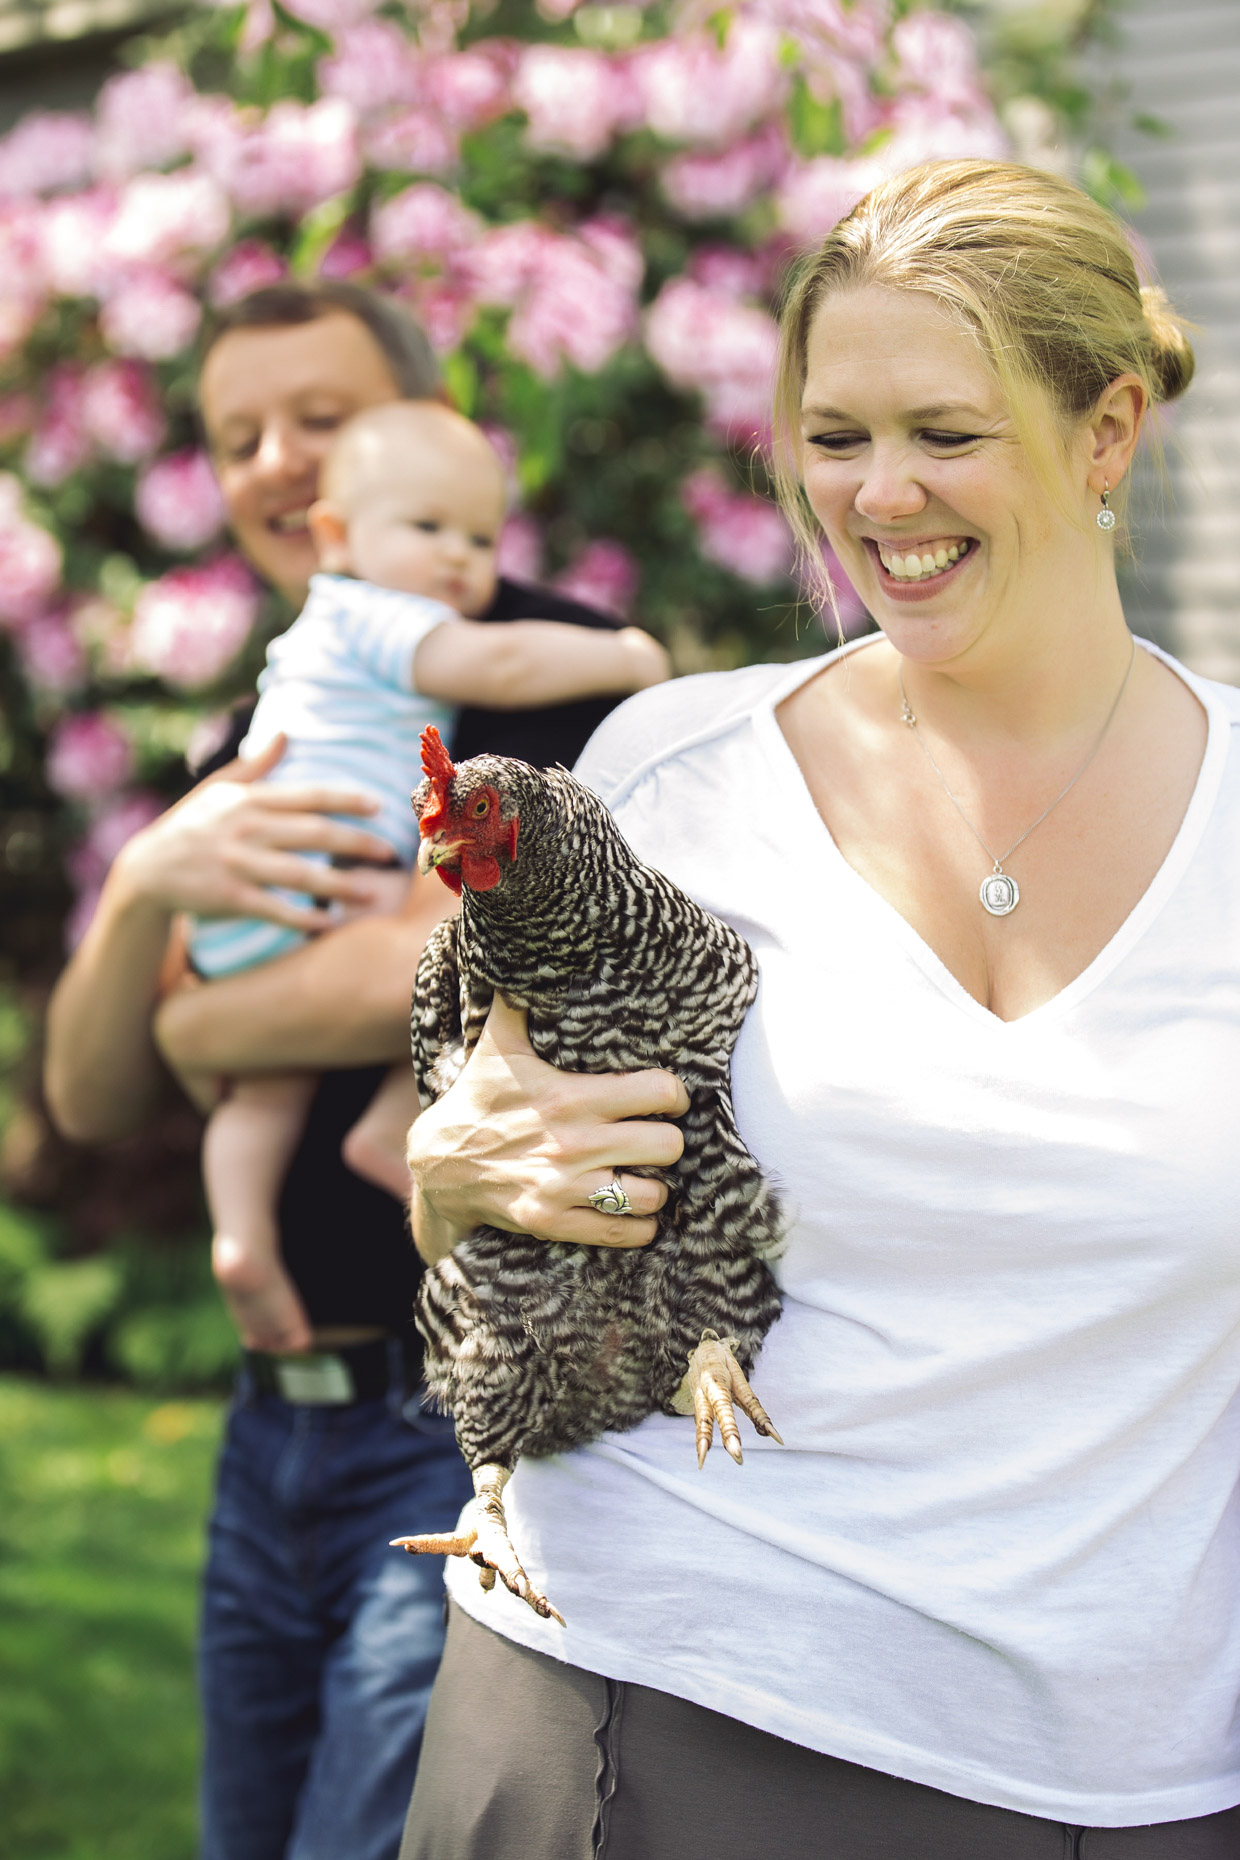 Happy woman holding chicken in garden with mand and baby walking behind